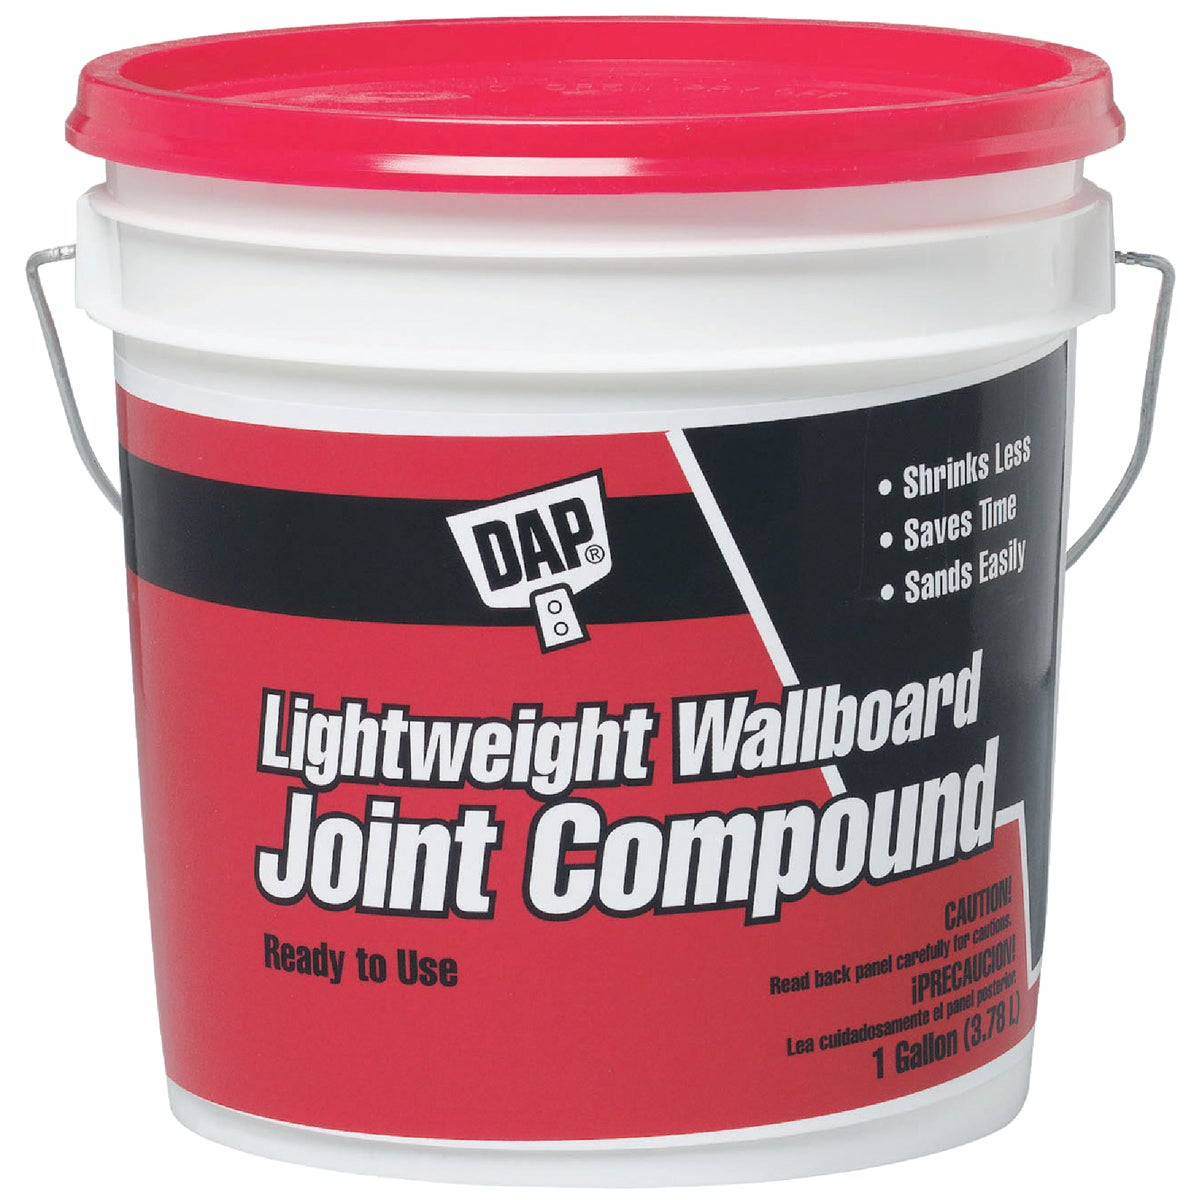 GAL LW JOINT COMPOUND - 10114 by Dap Inc